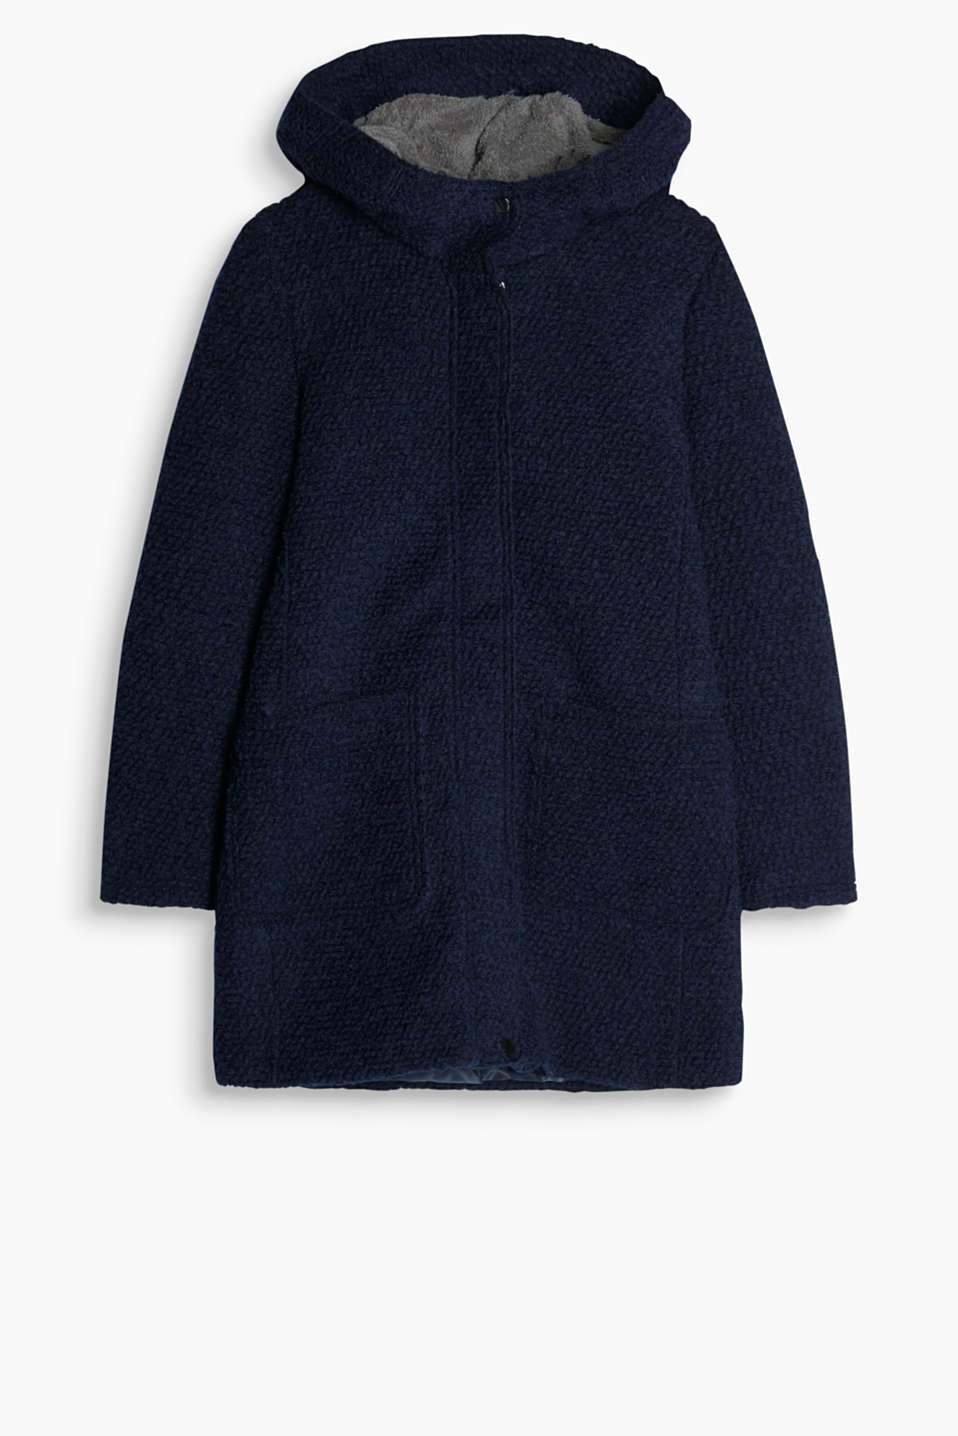 Sporty bouclé coat featuring a hood with soft lining and patch pockets